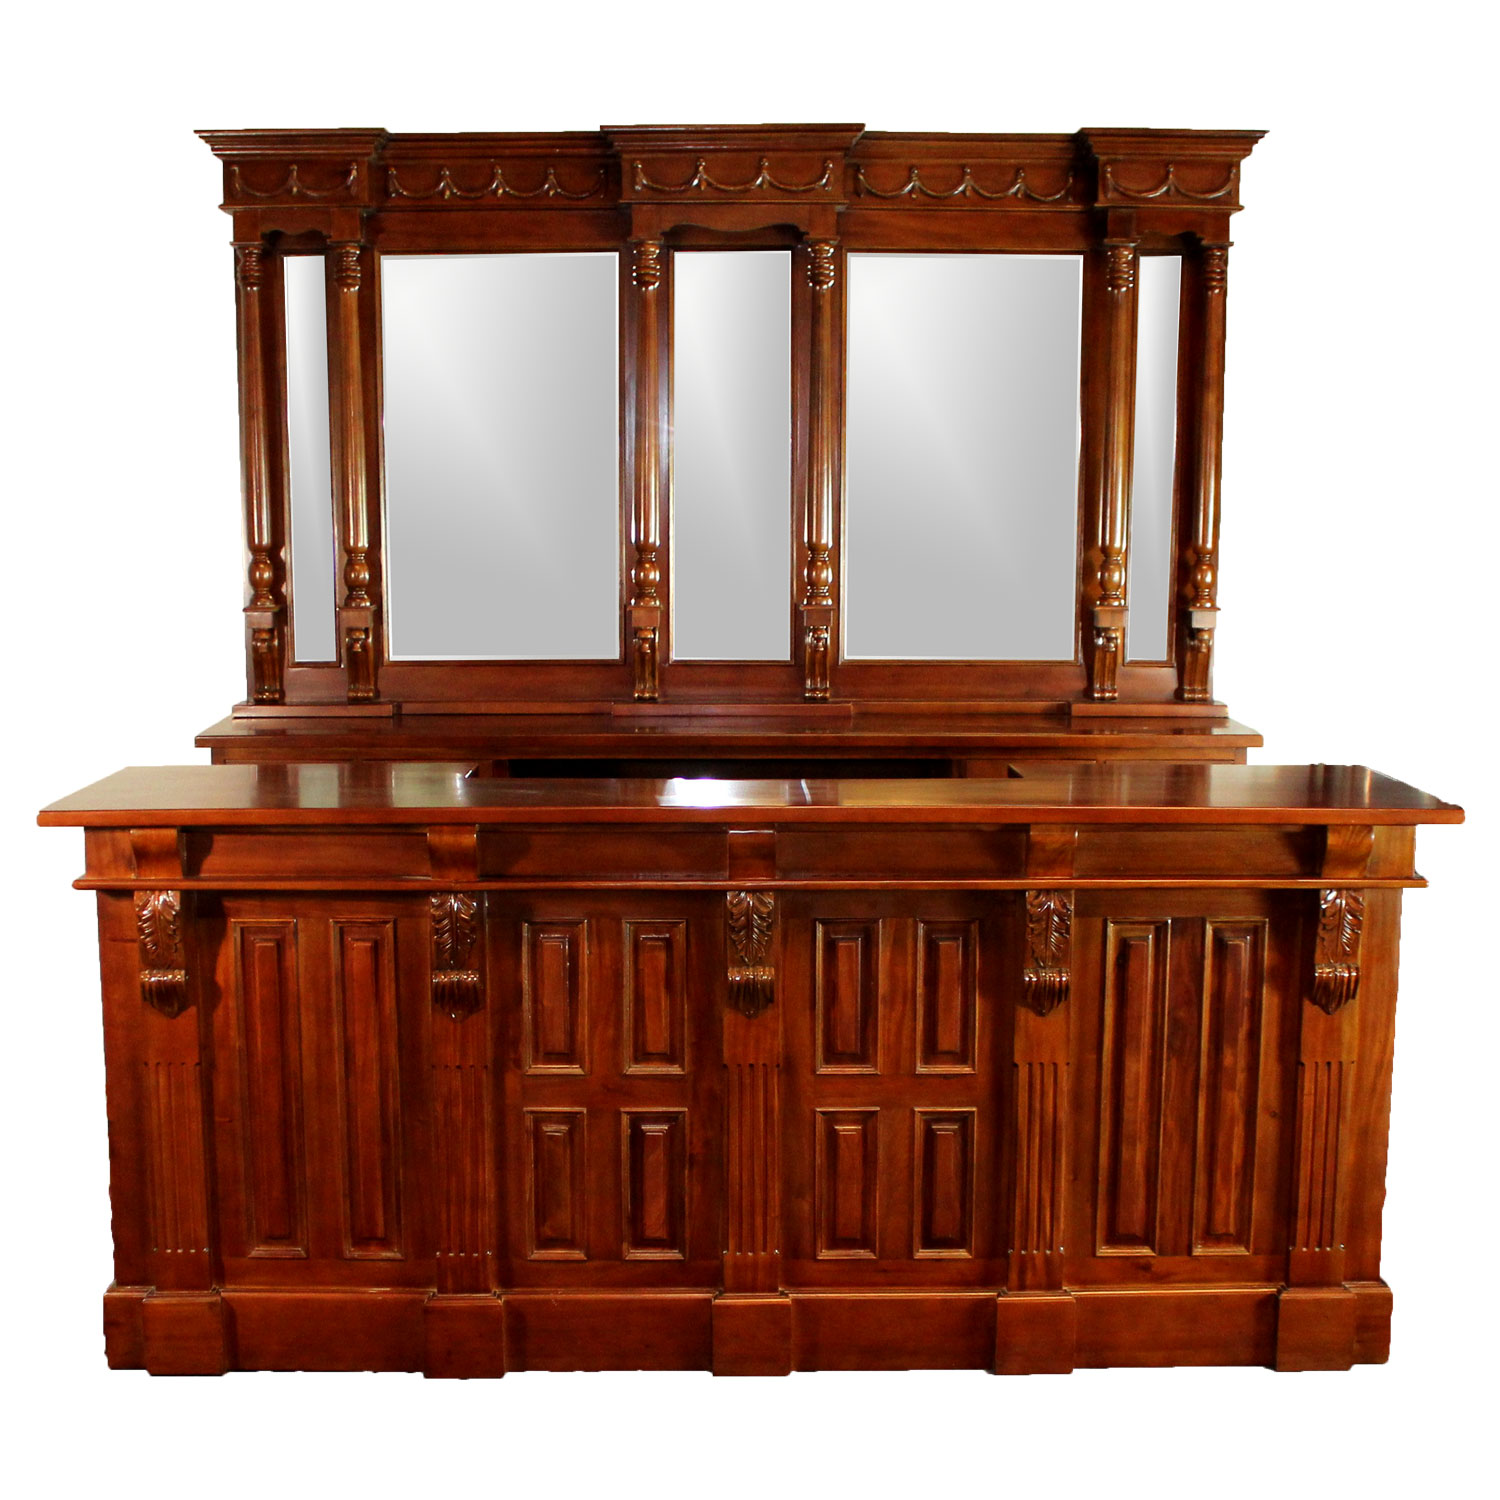 Home Bar Antique Front And Back Mahogany 8 Ft Wine Shop Counter Vintage Style The Kings Bay